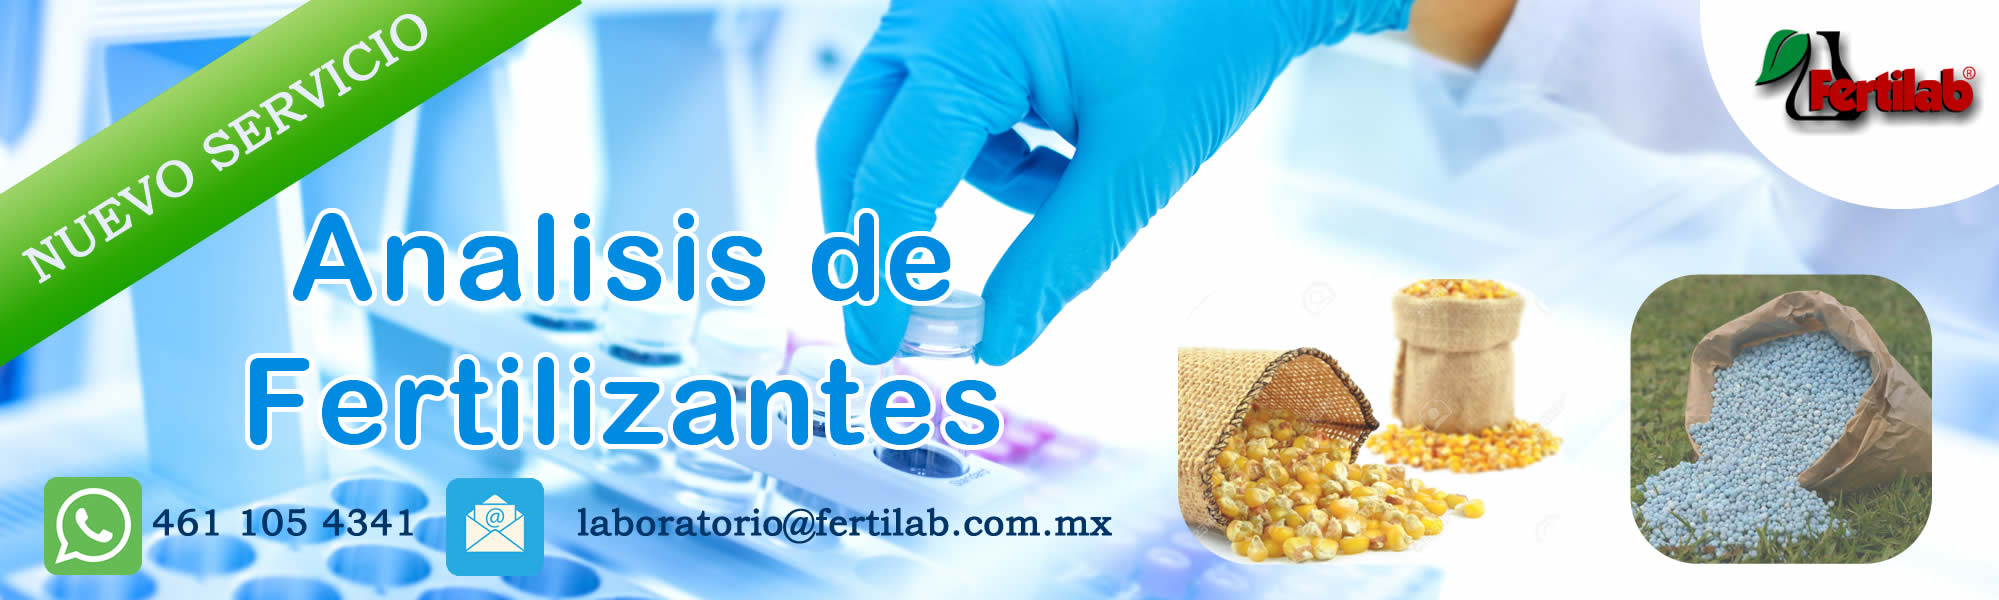 analisis de fertilizantes